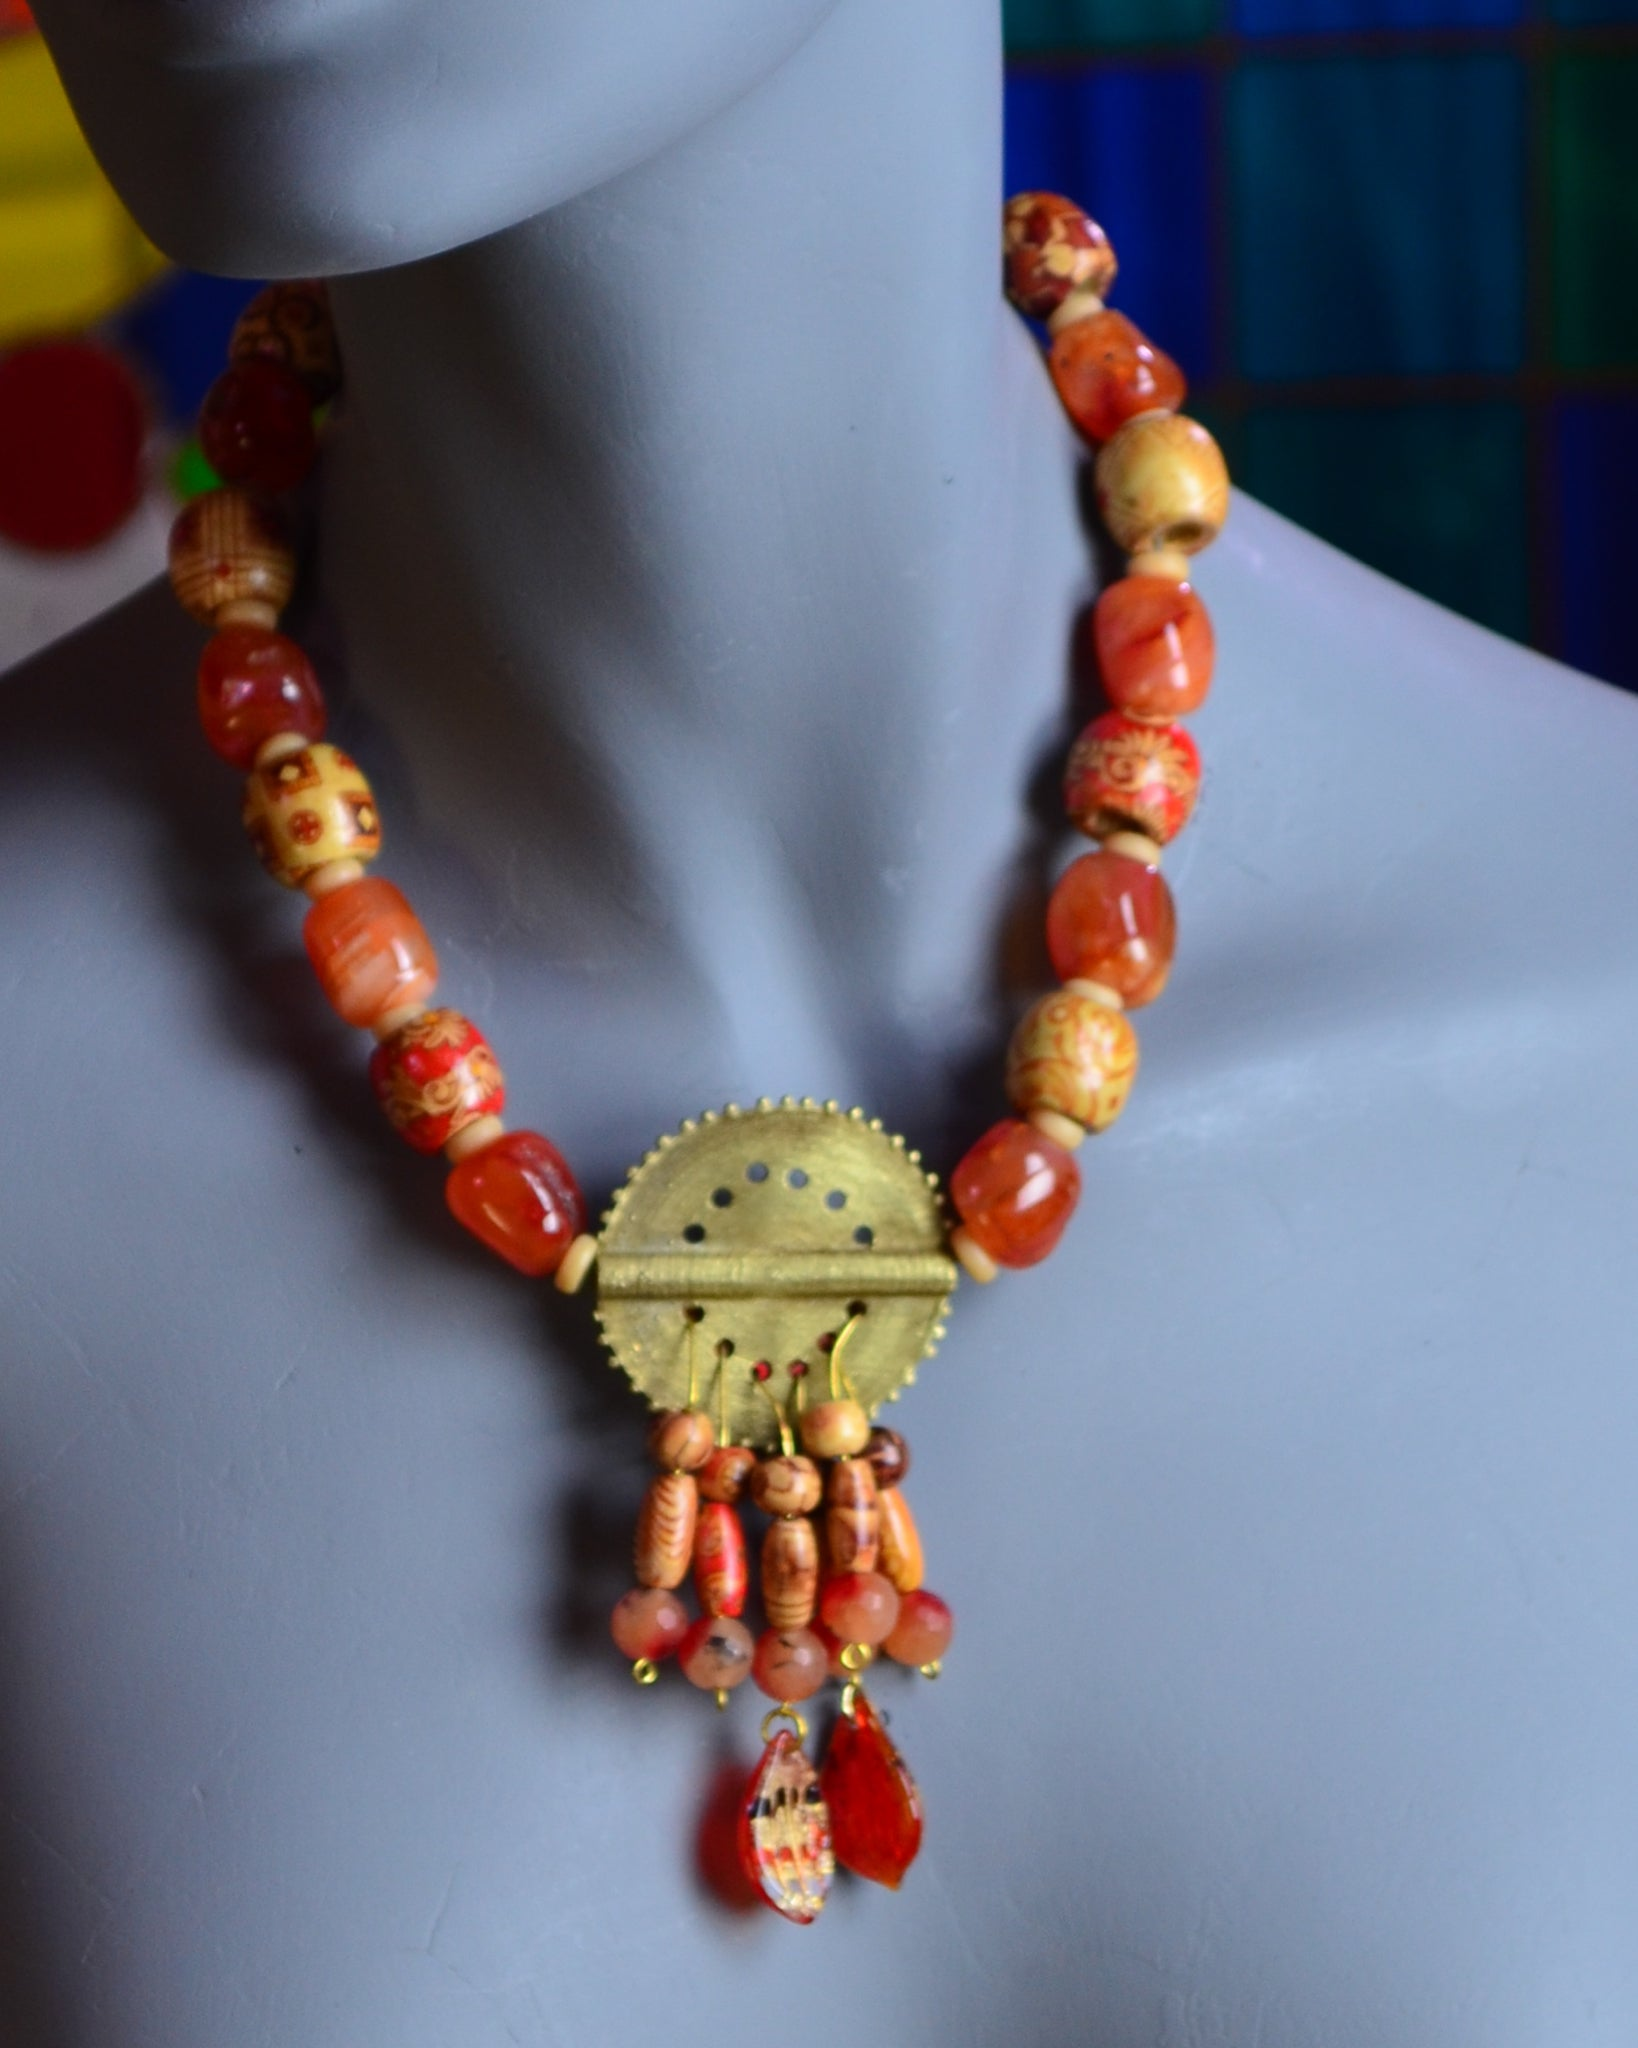 The printed wooden beads in this necklace are from China, where orange symbolizes transformation, as it is the perfect balance between yellow and red. So this necklace brings perfection to an imperfect world! Wear orange!